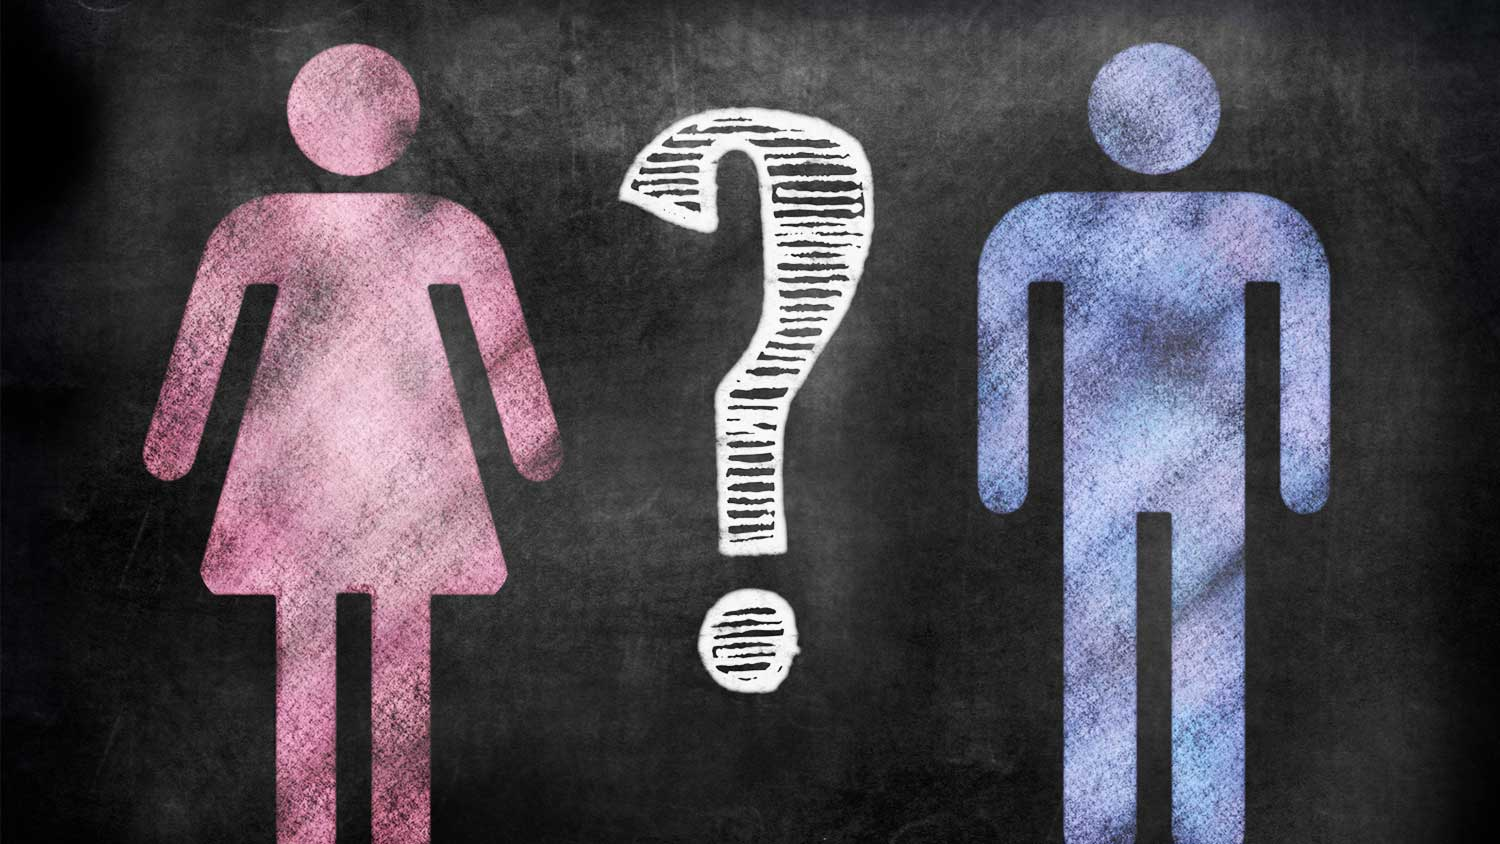 gendersymbolsquestion-blog-052417